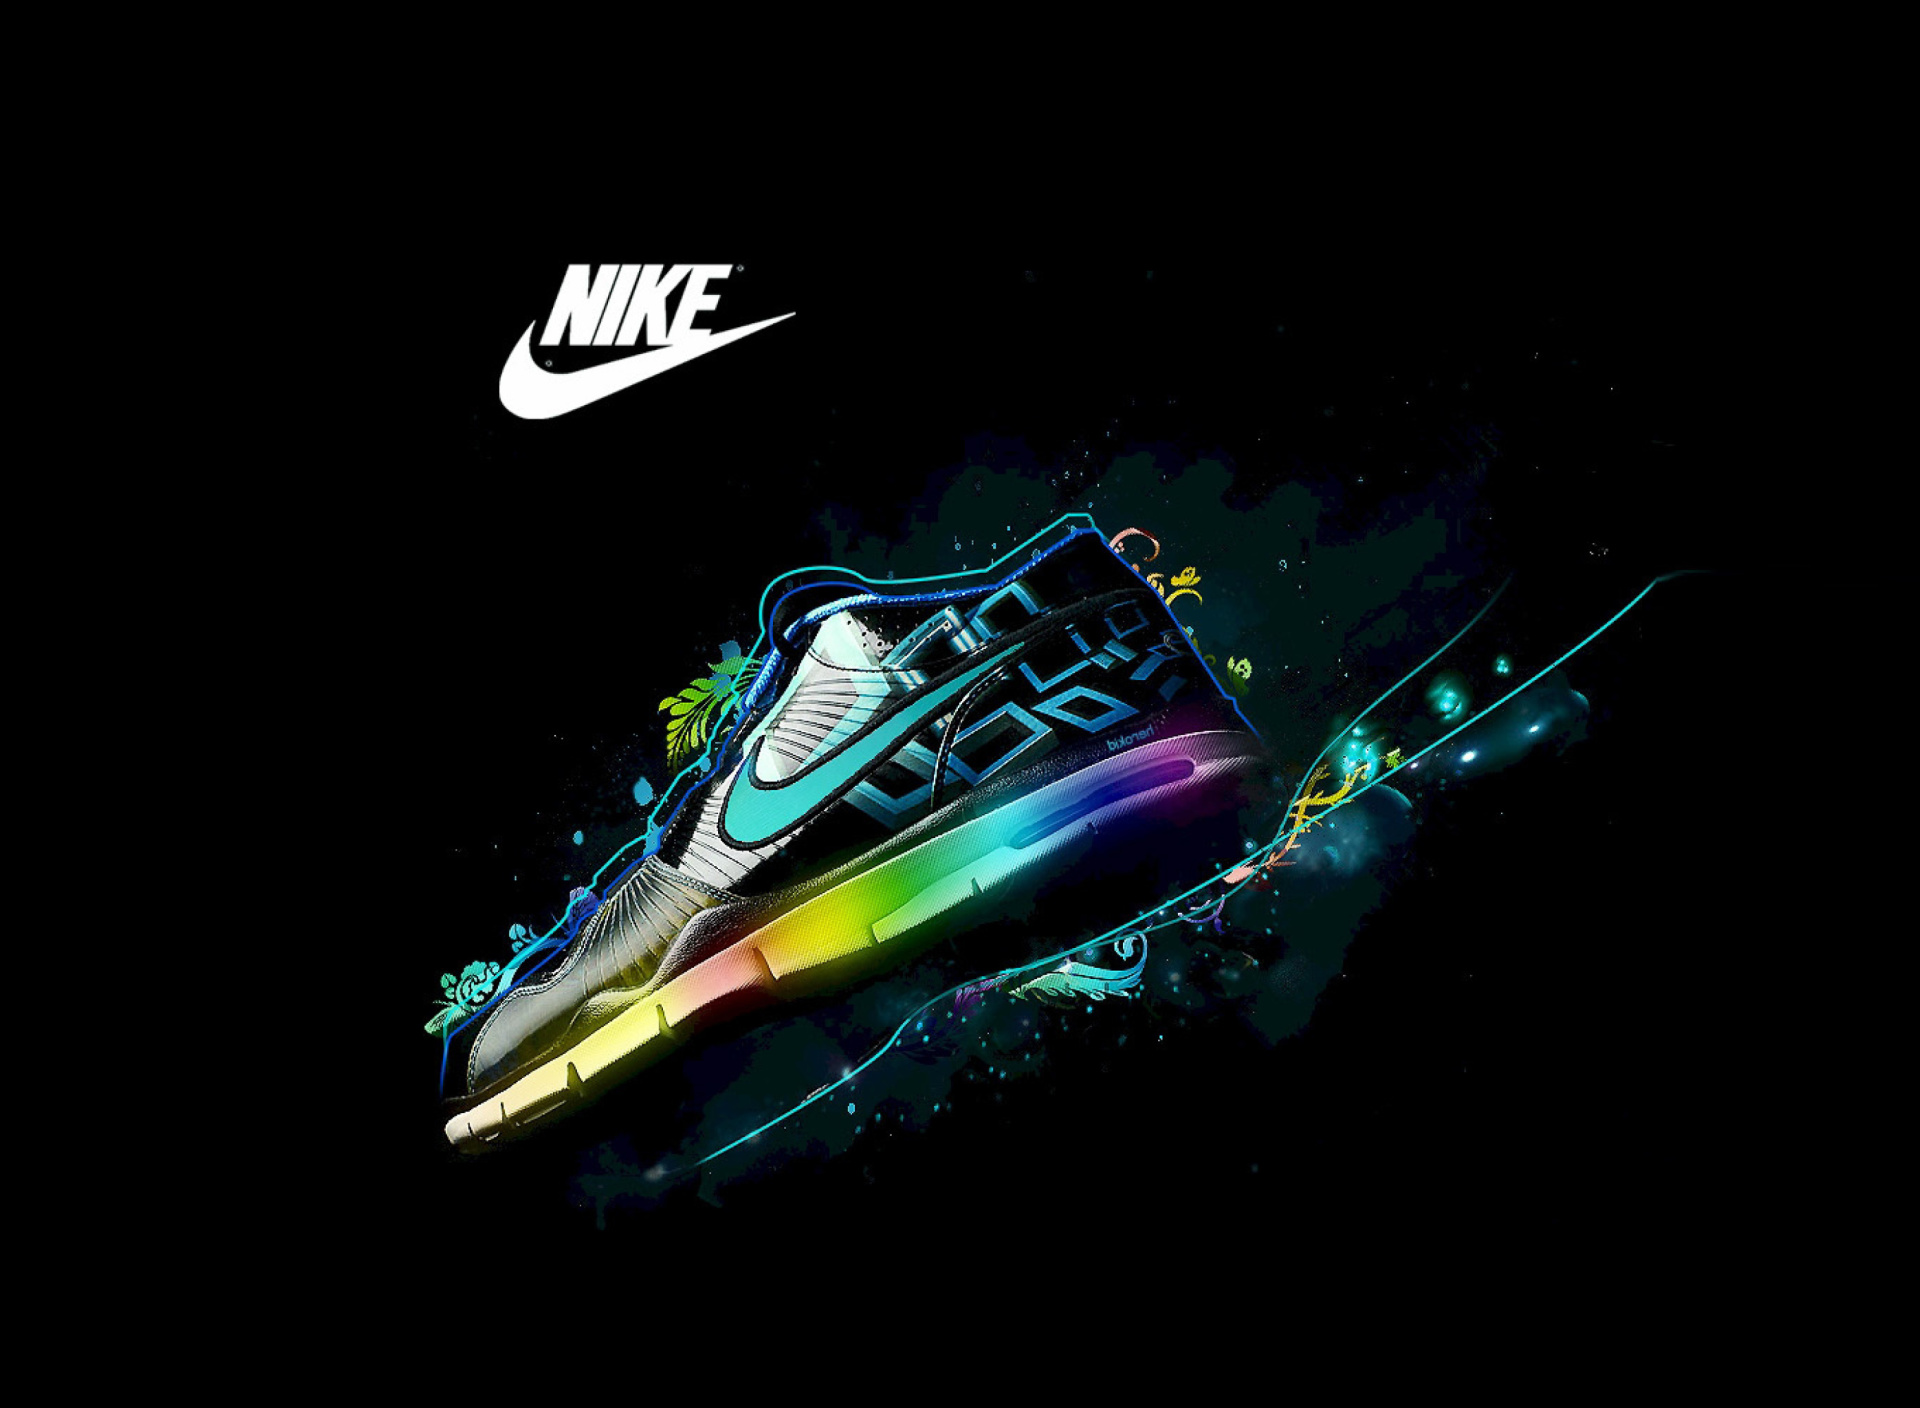 Nike Logo And Nike Air Shoes Wallpaper For Samsung Galaxy S5